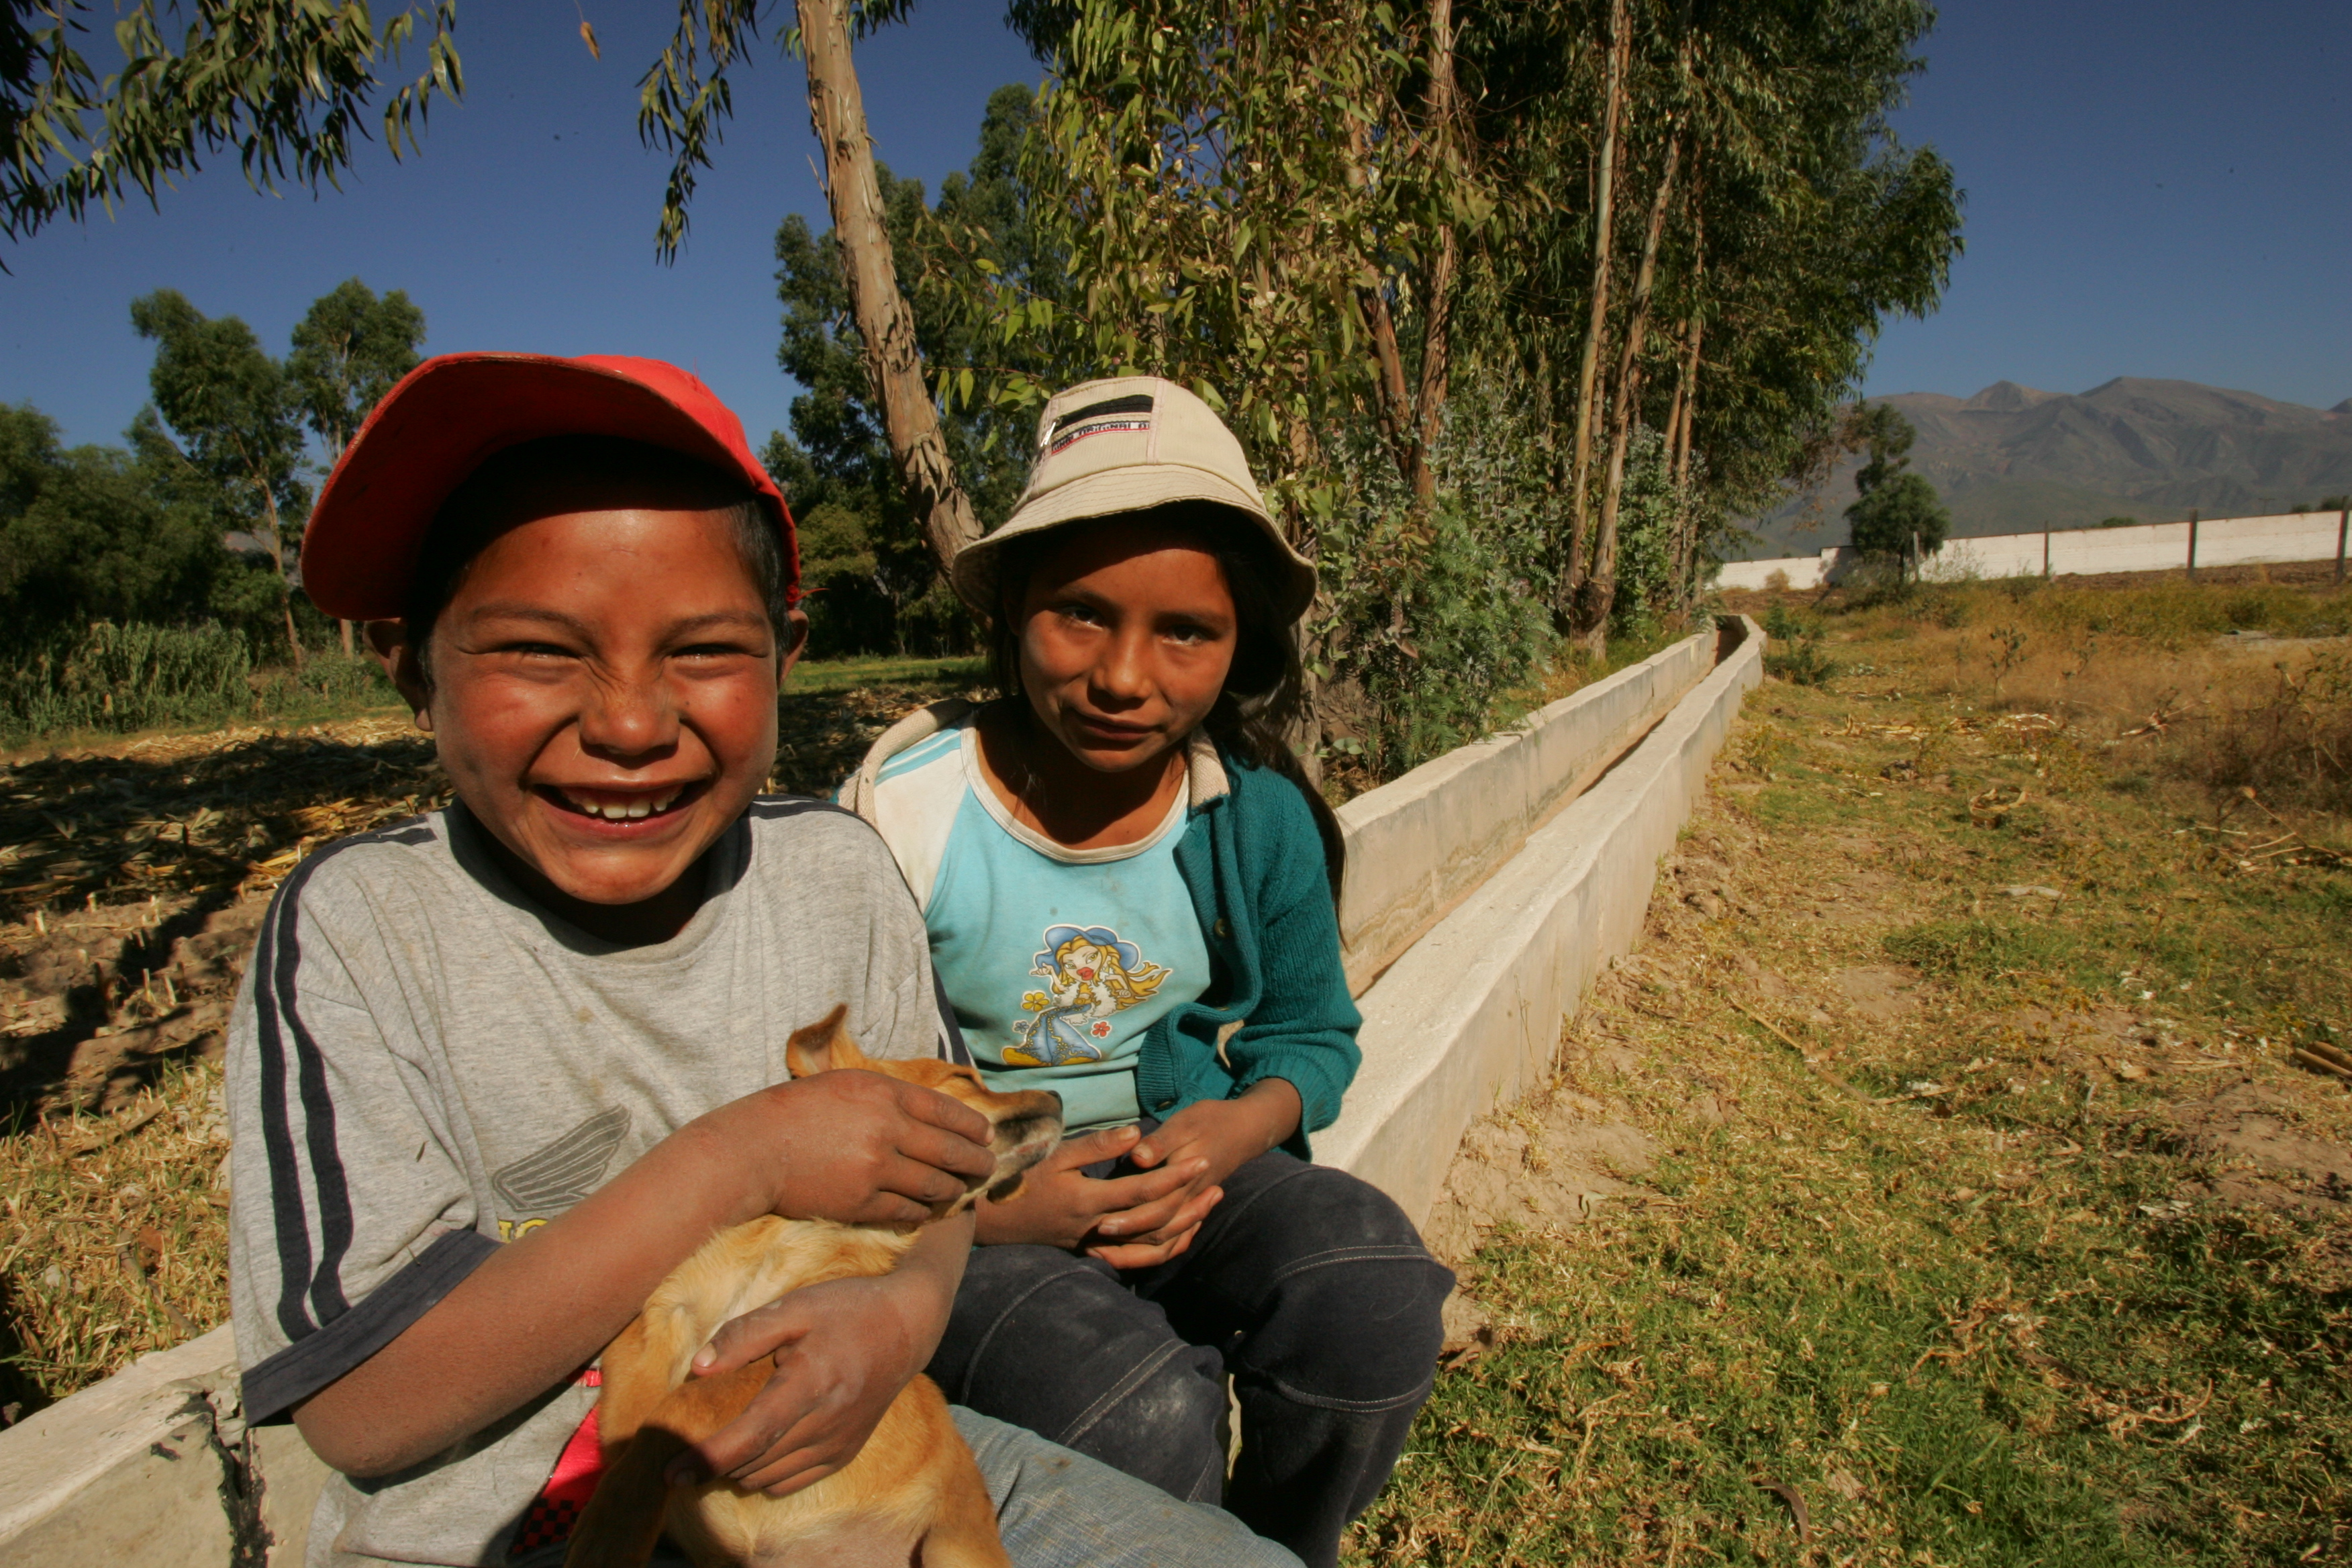 kids on irrigation canal.jpg